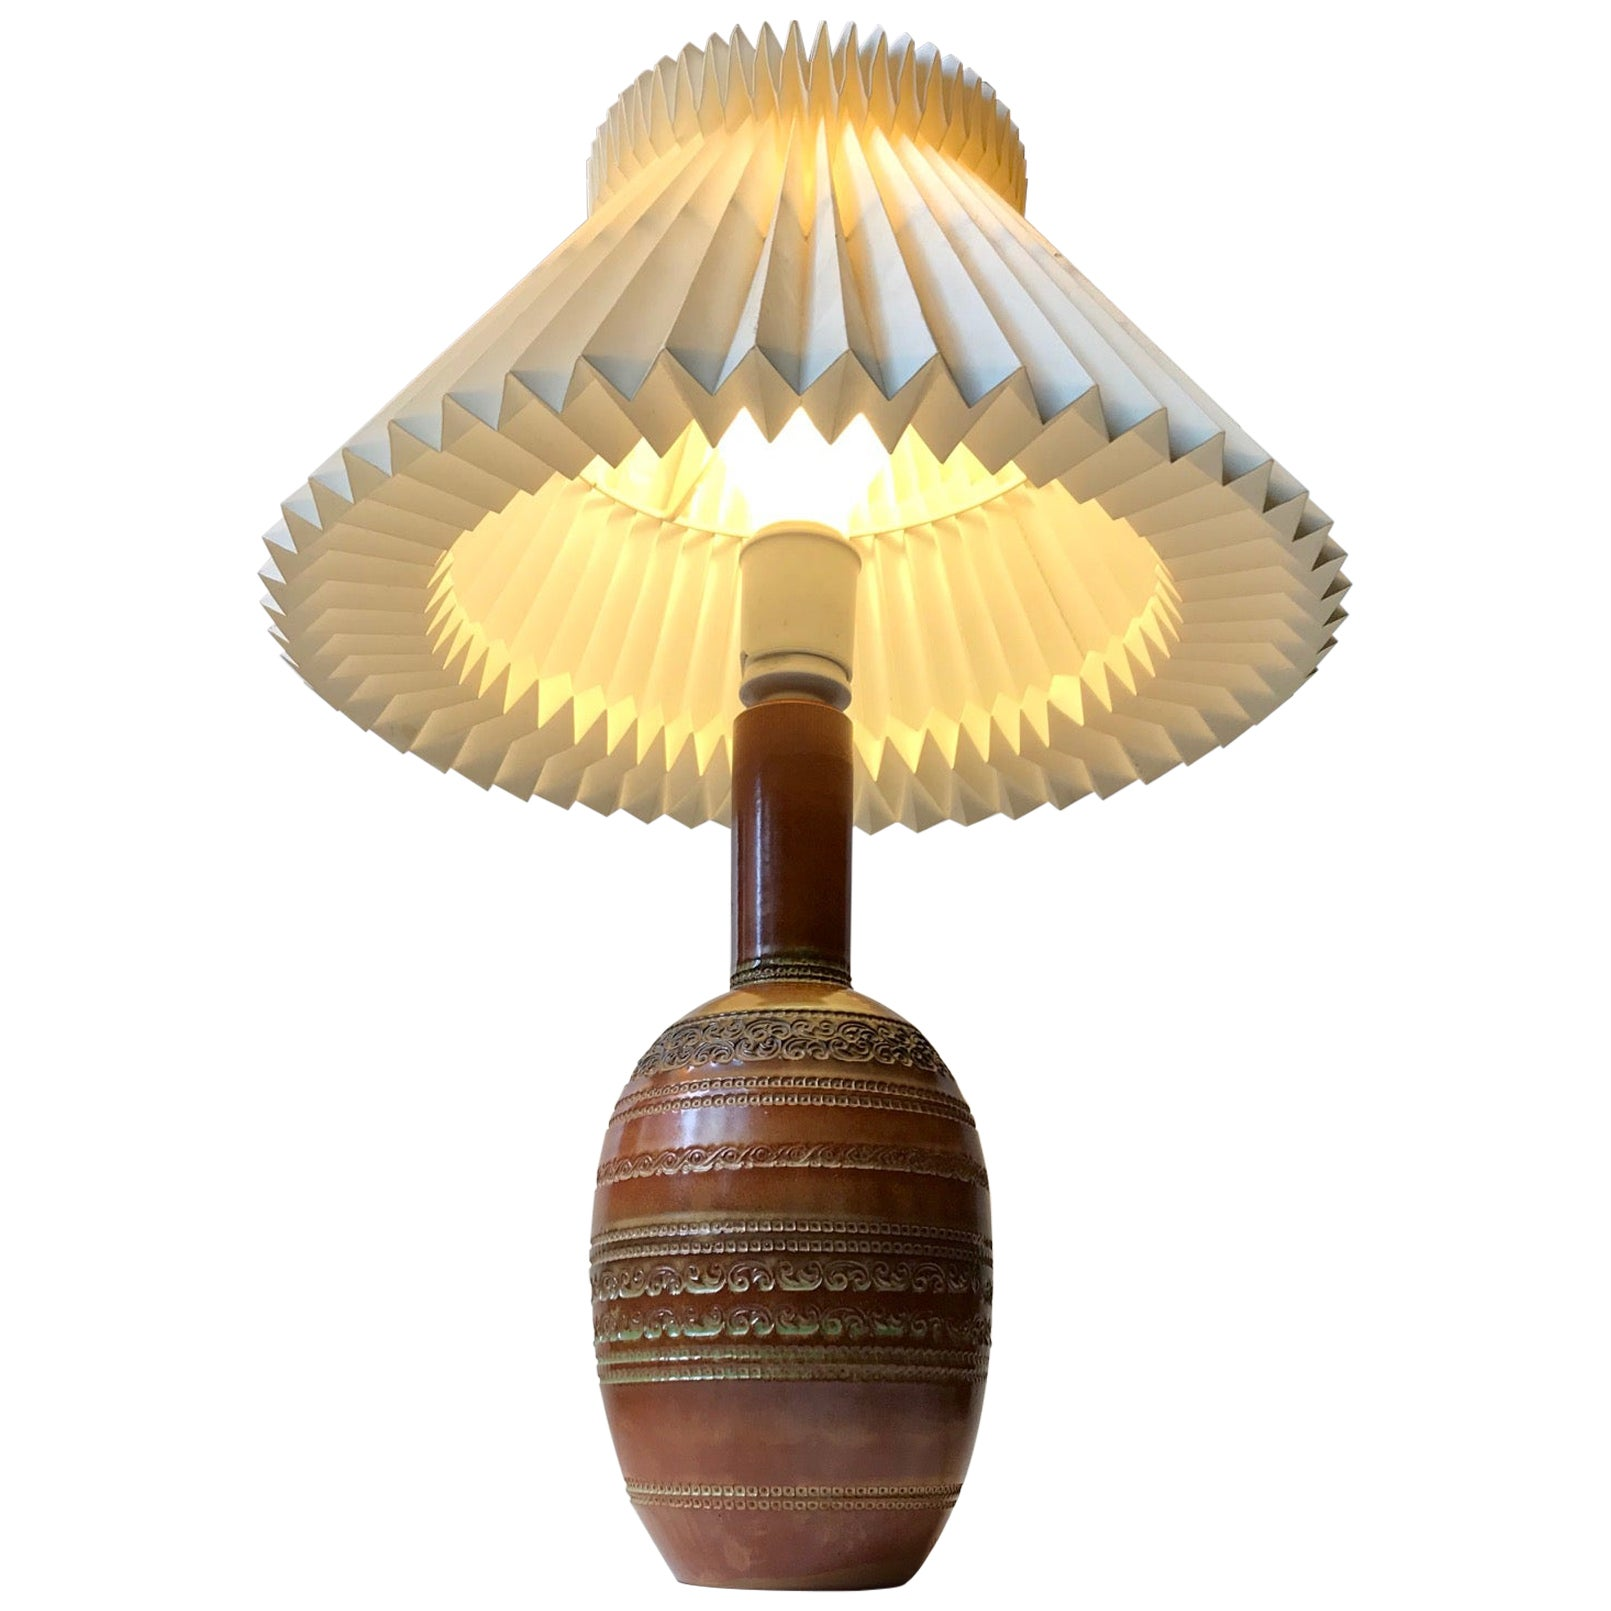 Ceramic Table Lamp by Aldo Londi for Bitossi, 1960s